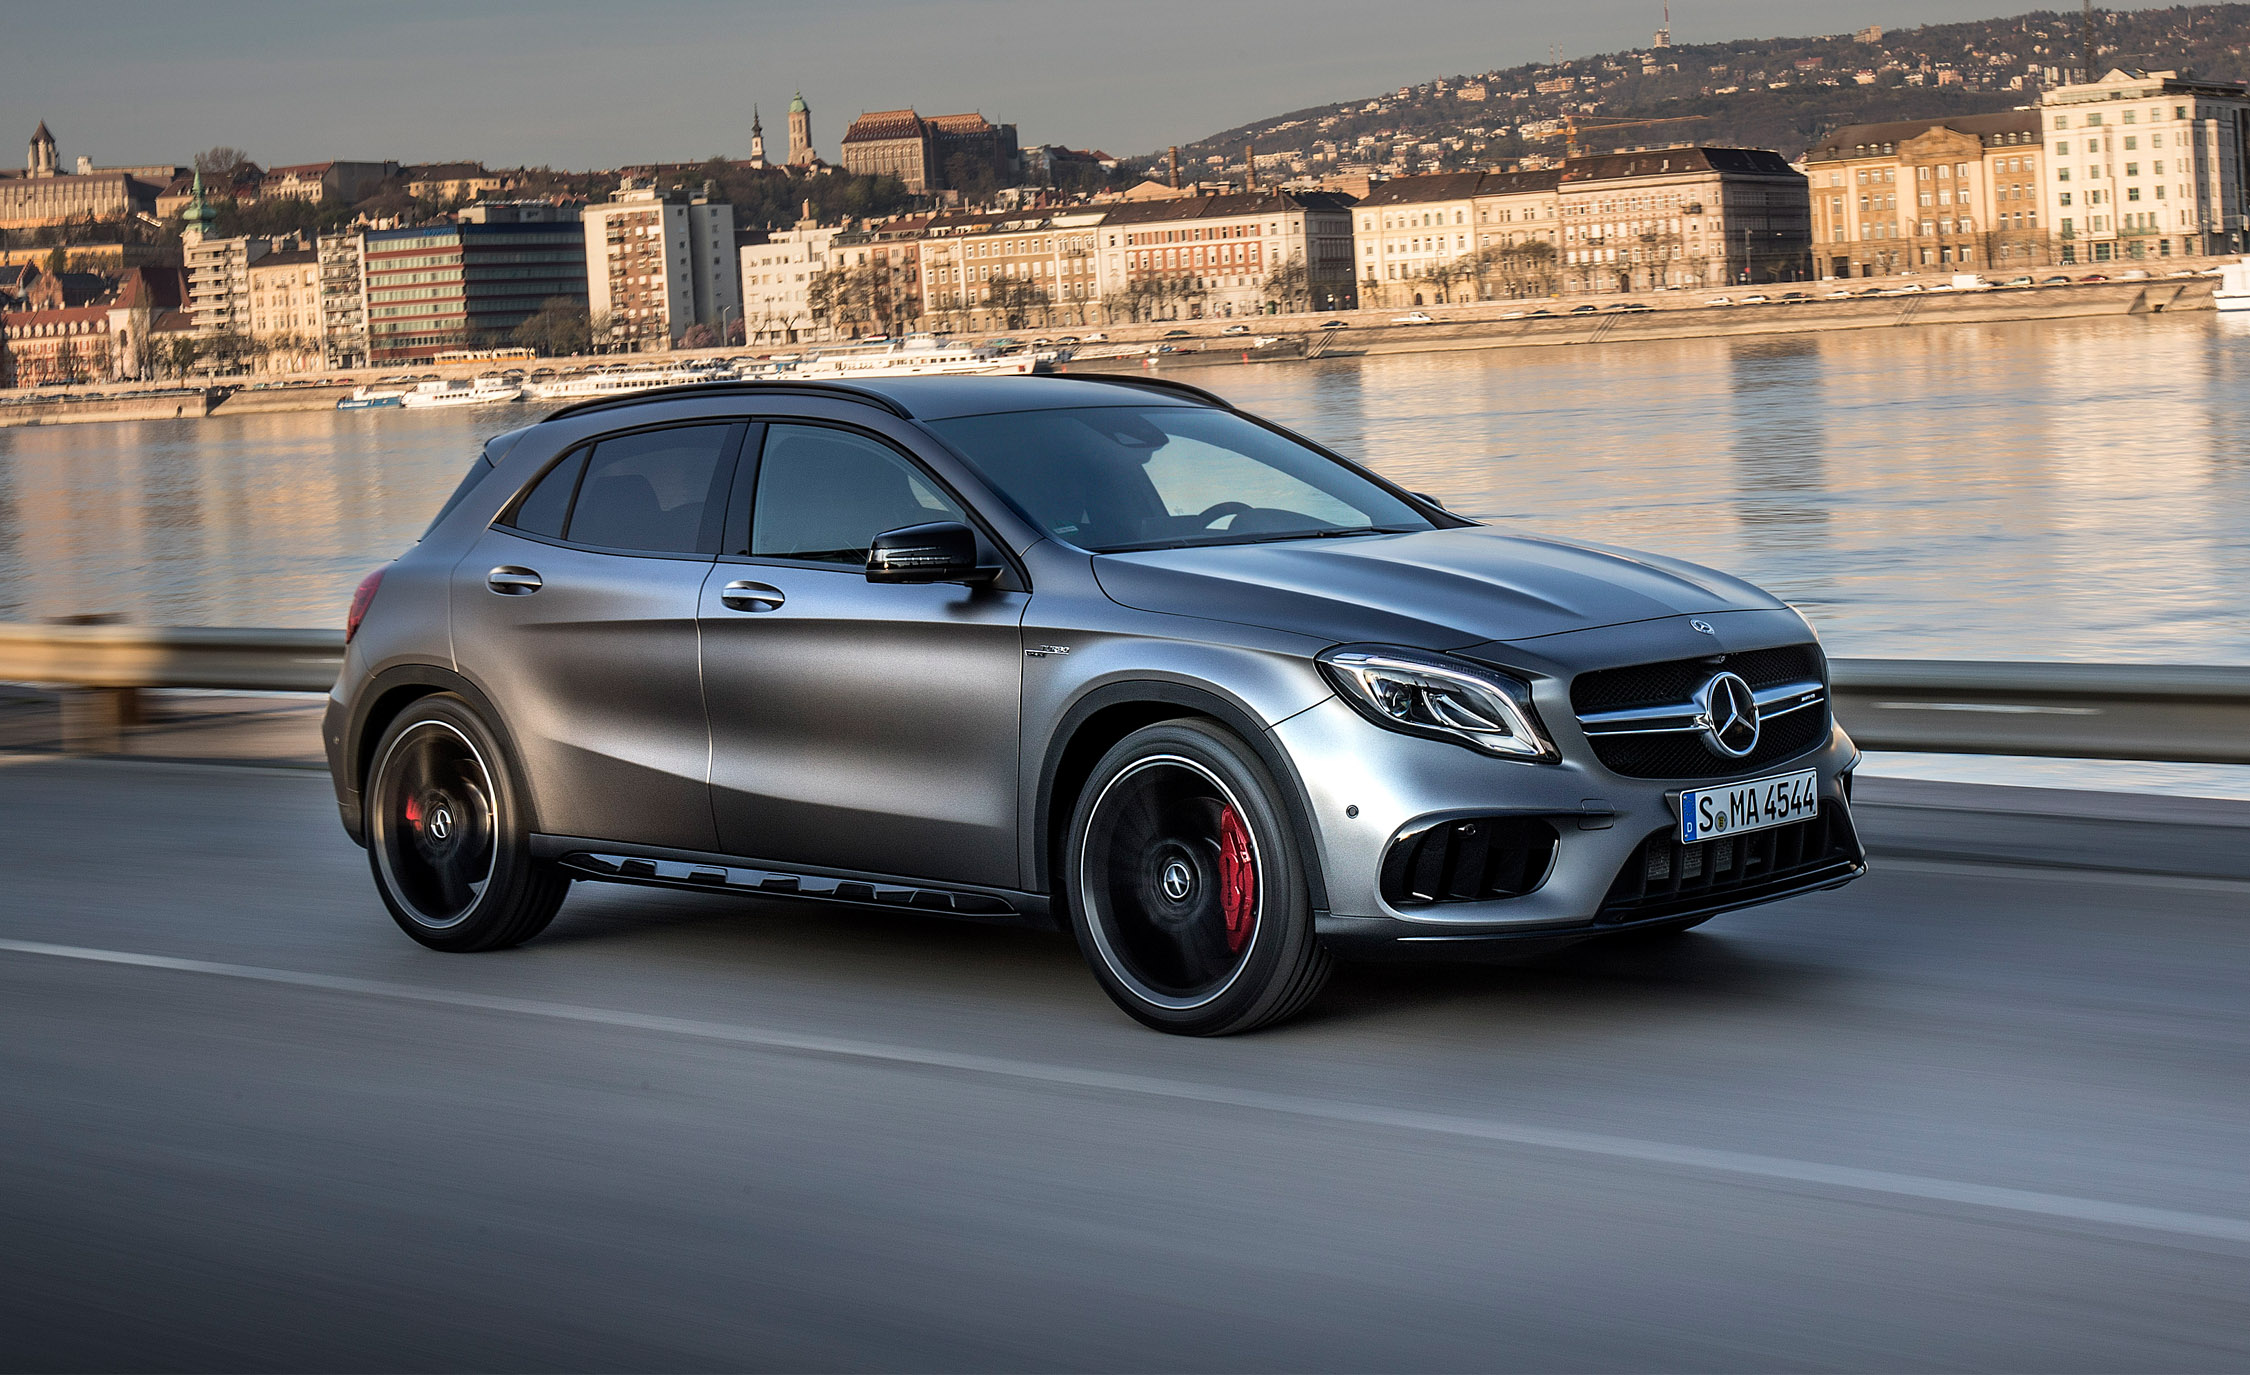 2018 Mercedes-AMG GLA45 4Matic Test | Review | Car and Driver